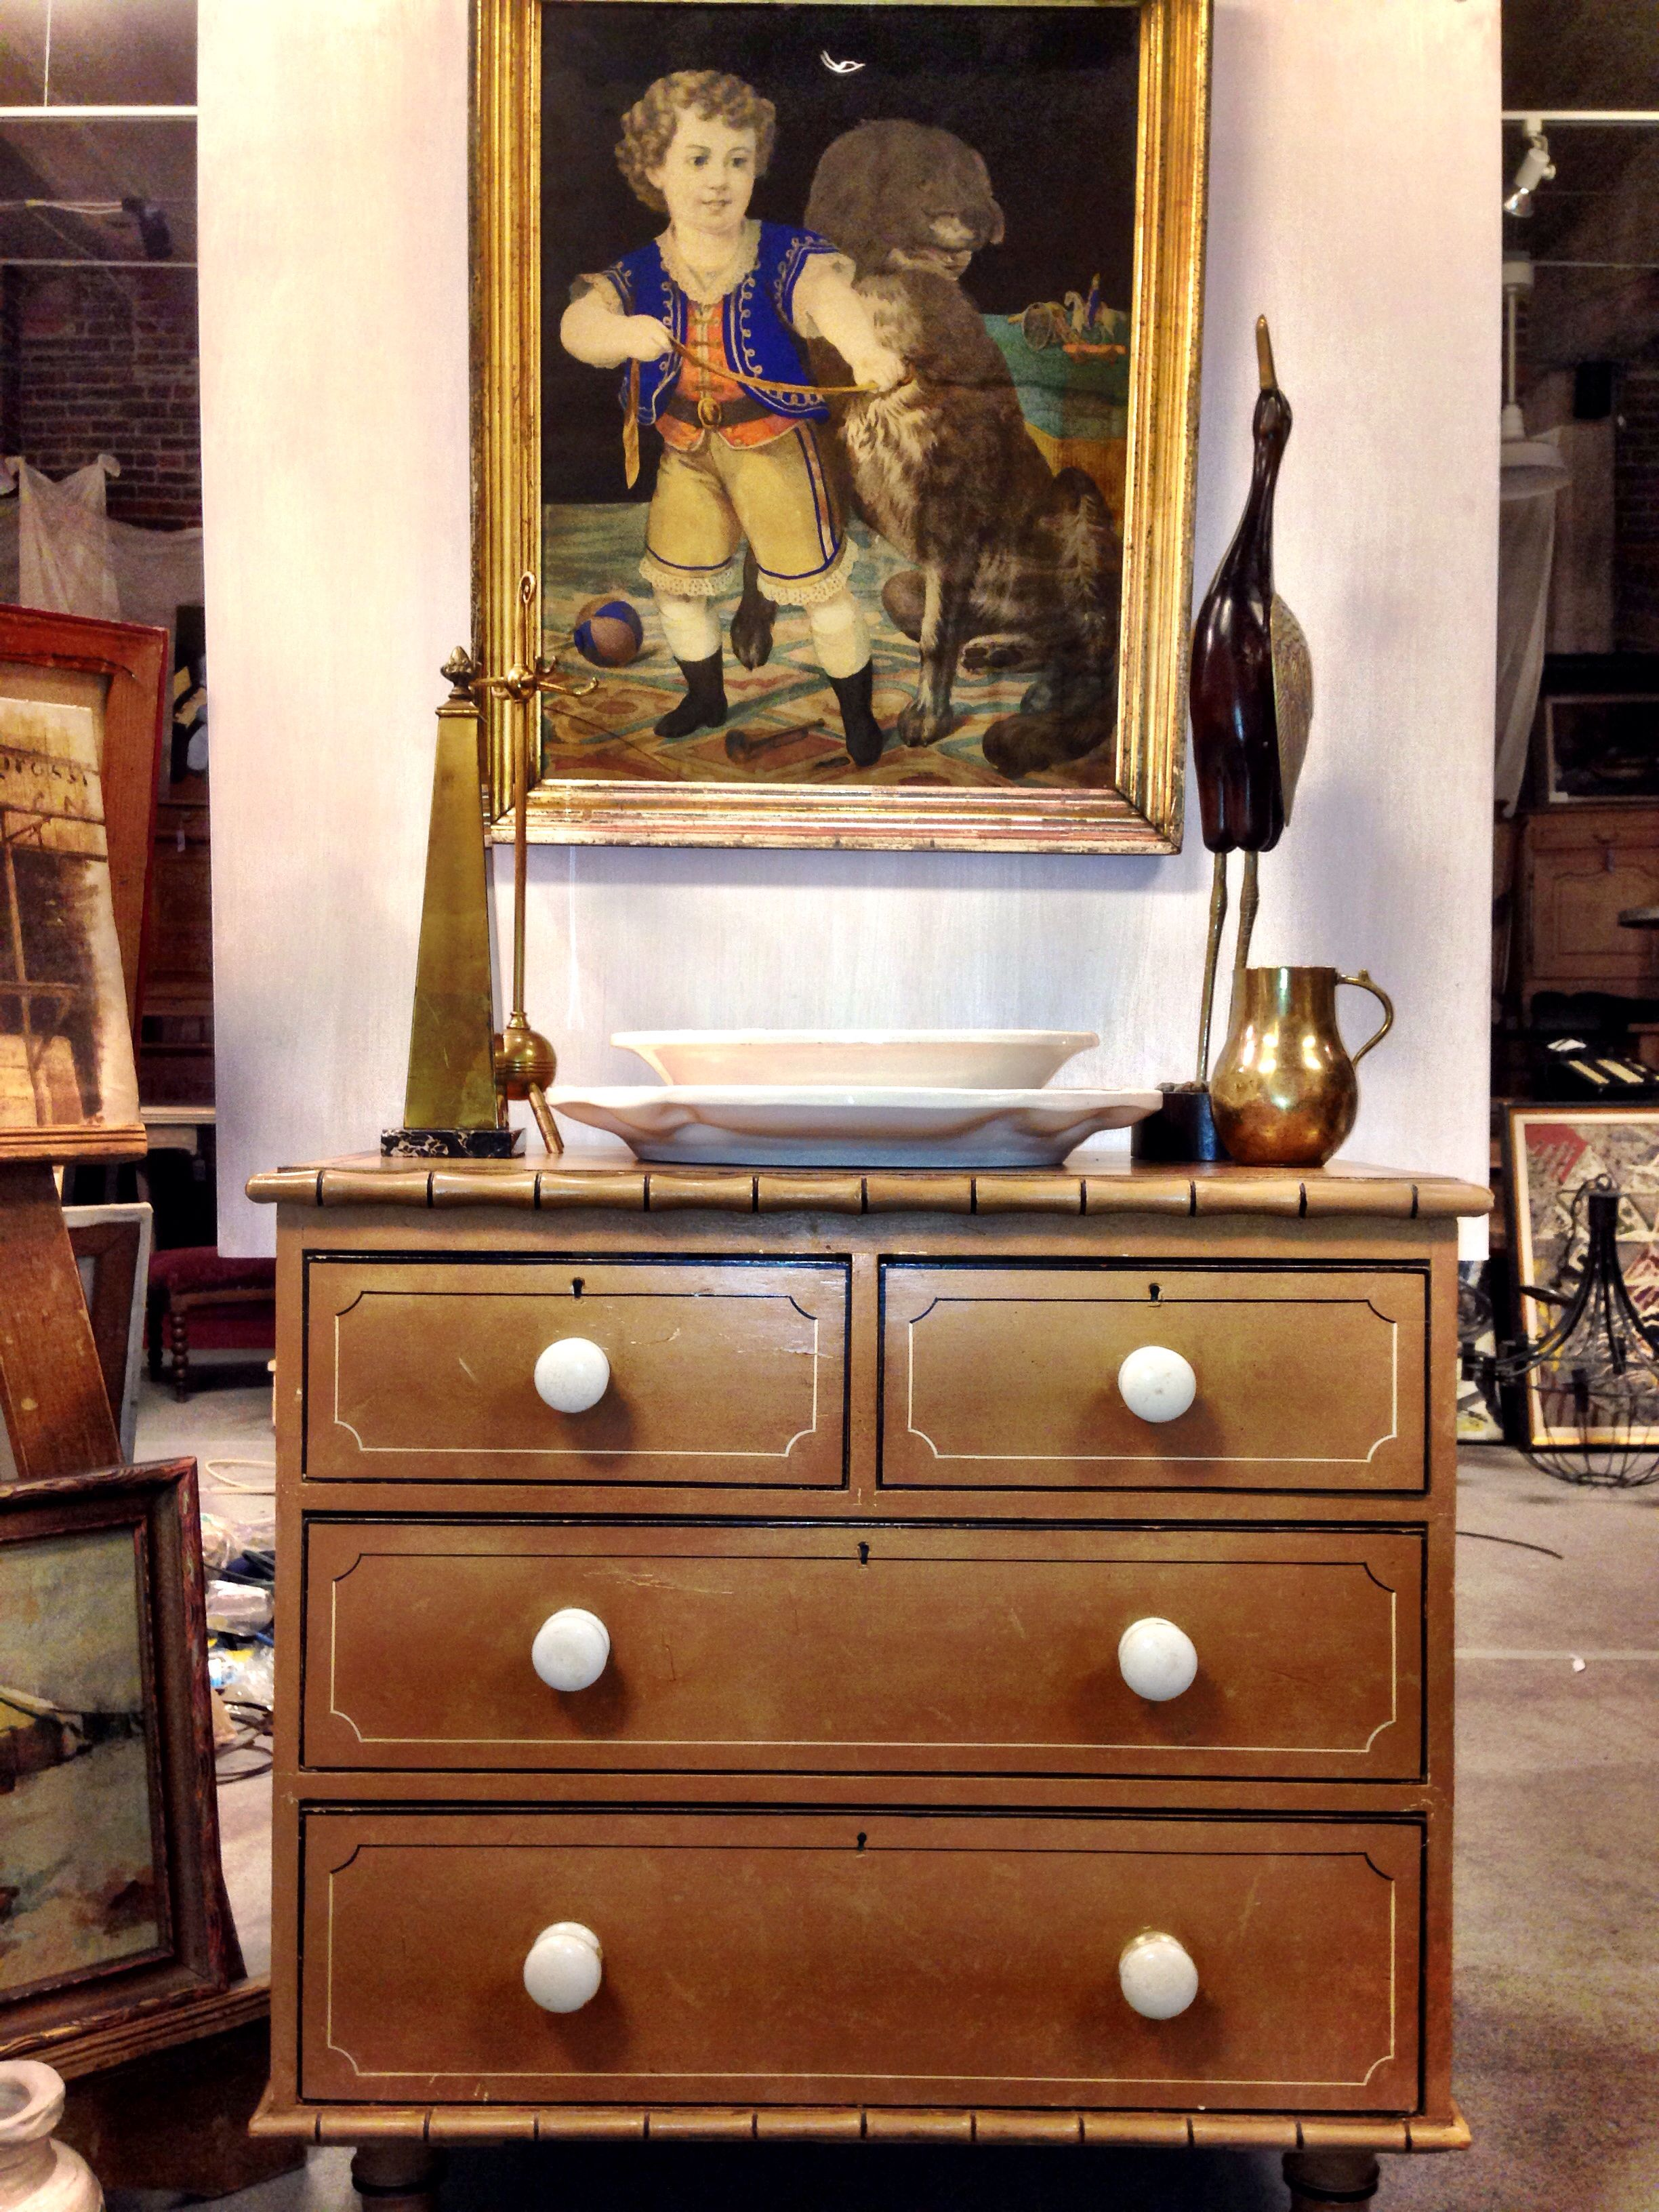 Antiques are back! Shop with me at High Point in the Antique and Design Center, booths 34 and 34a. #hpmkt